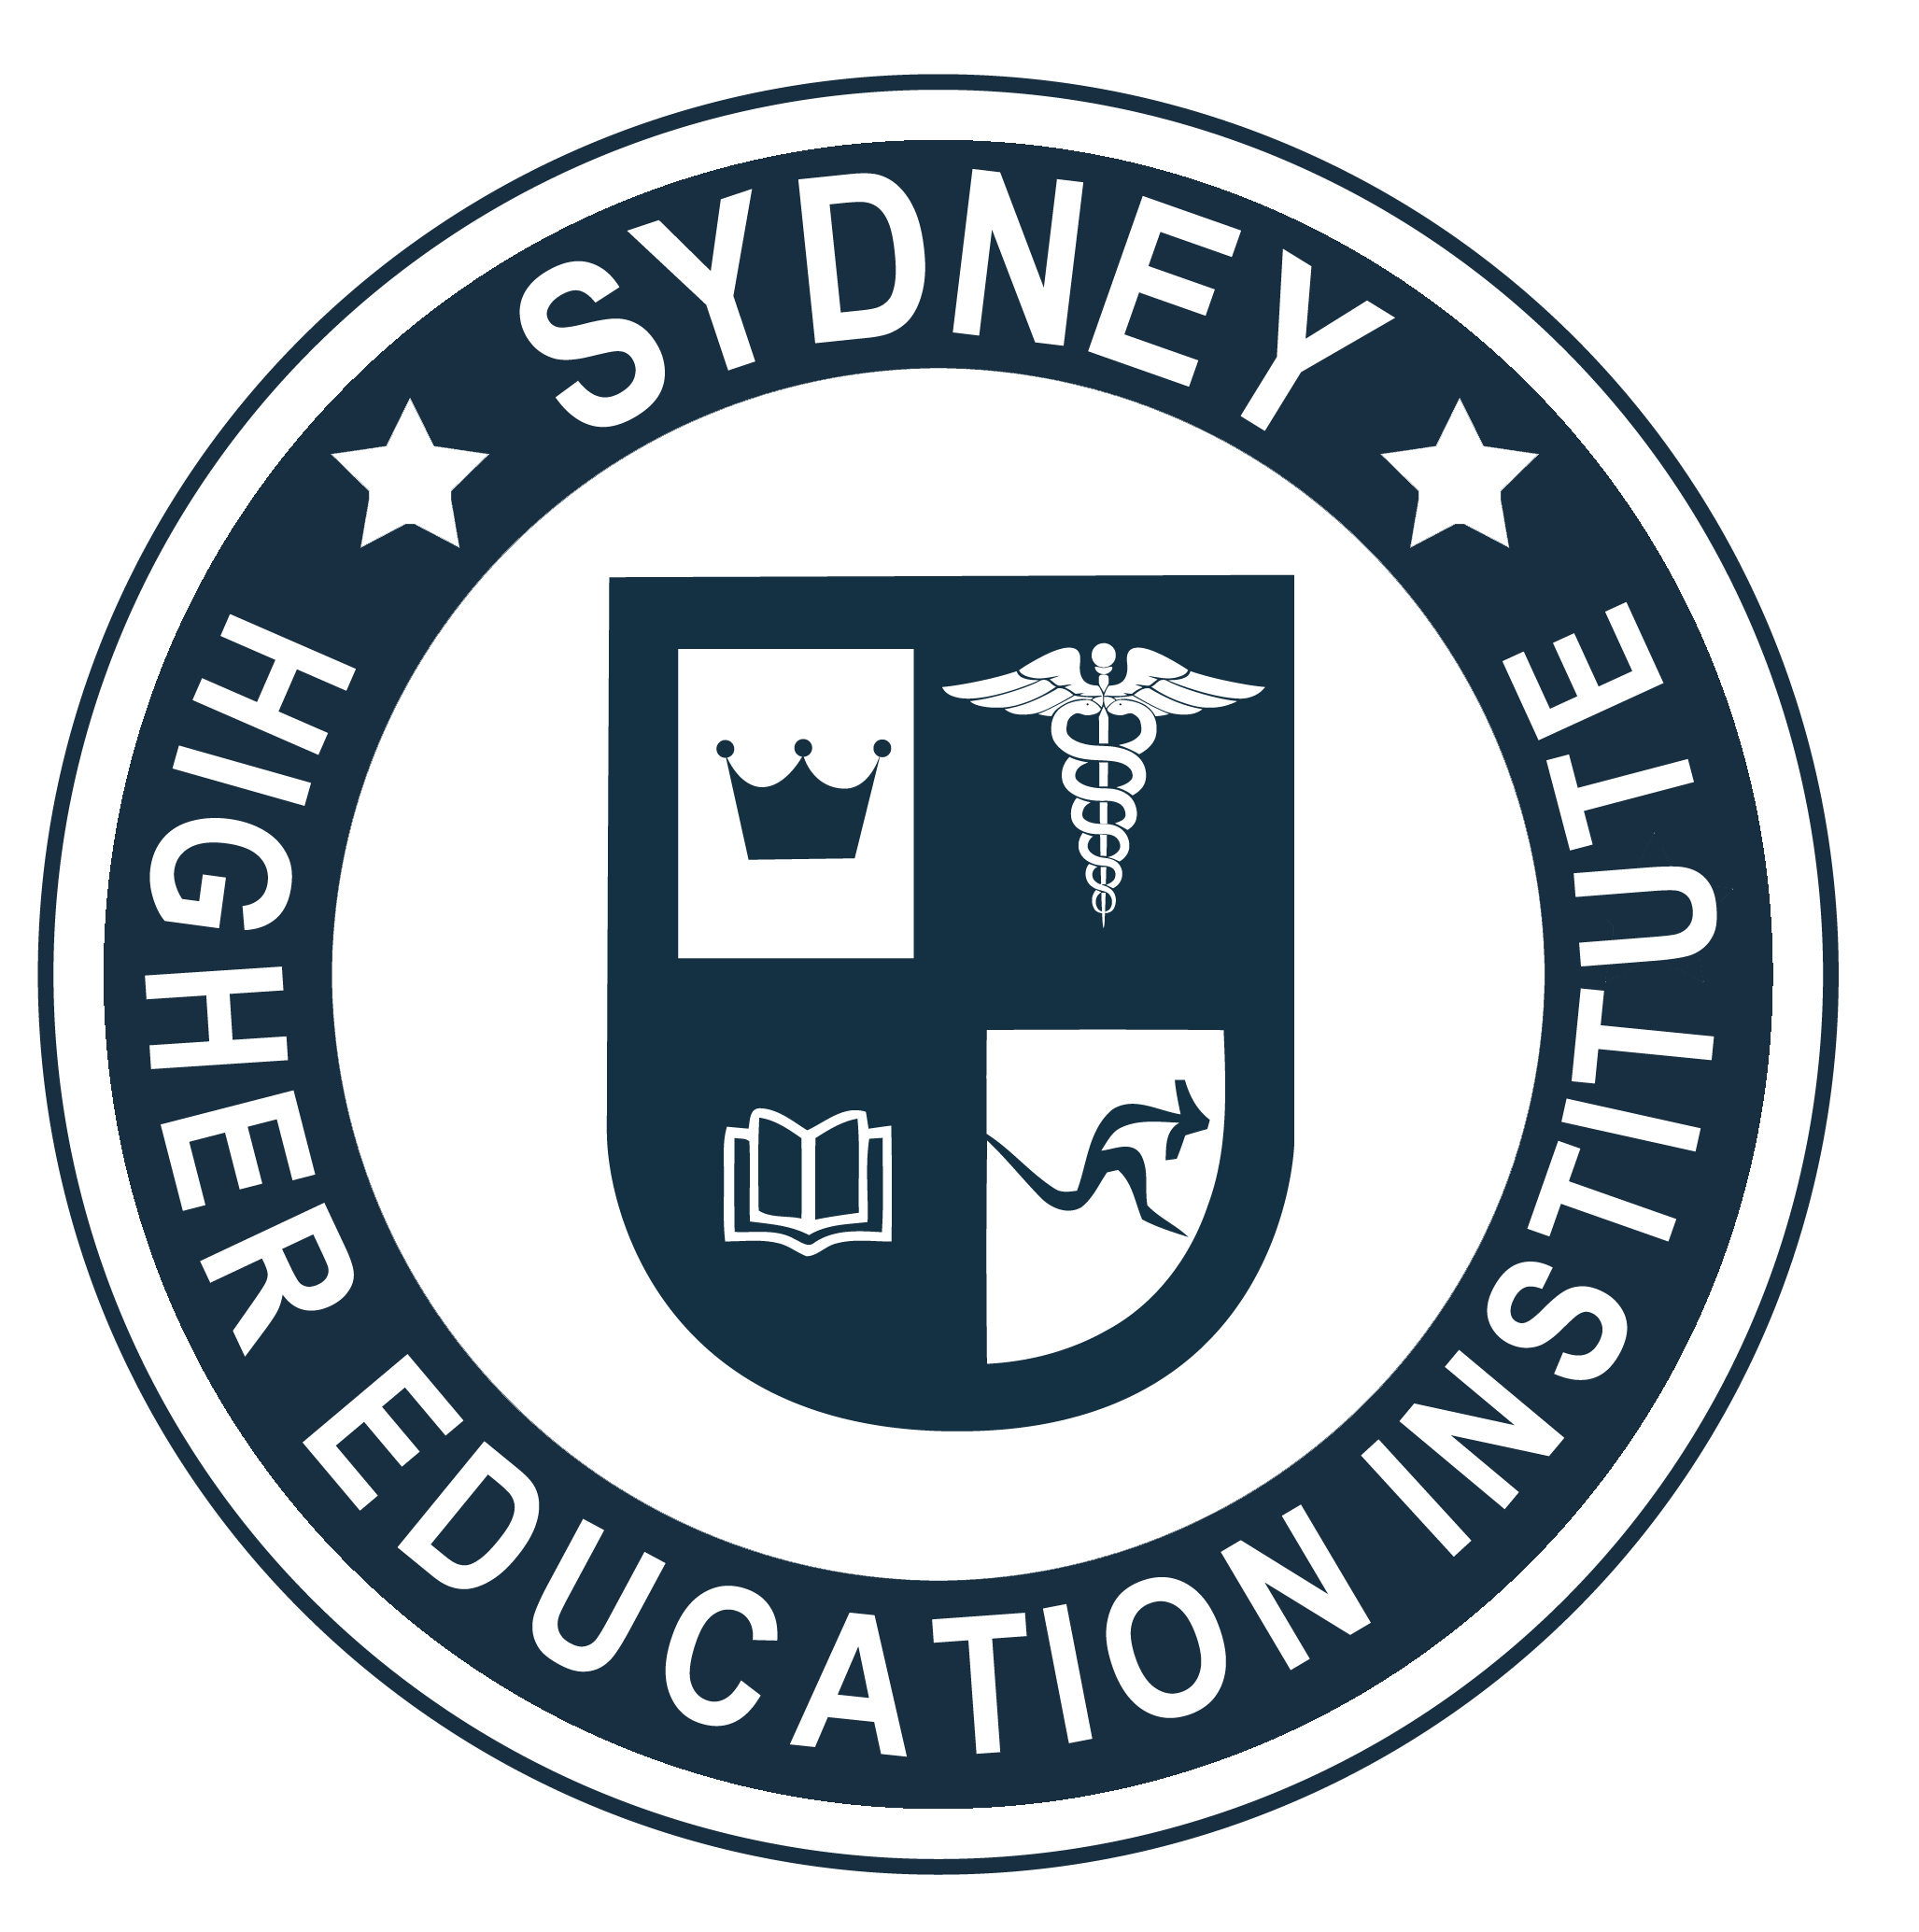 Sydney Higher Education Institute